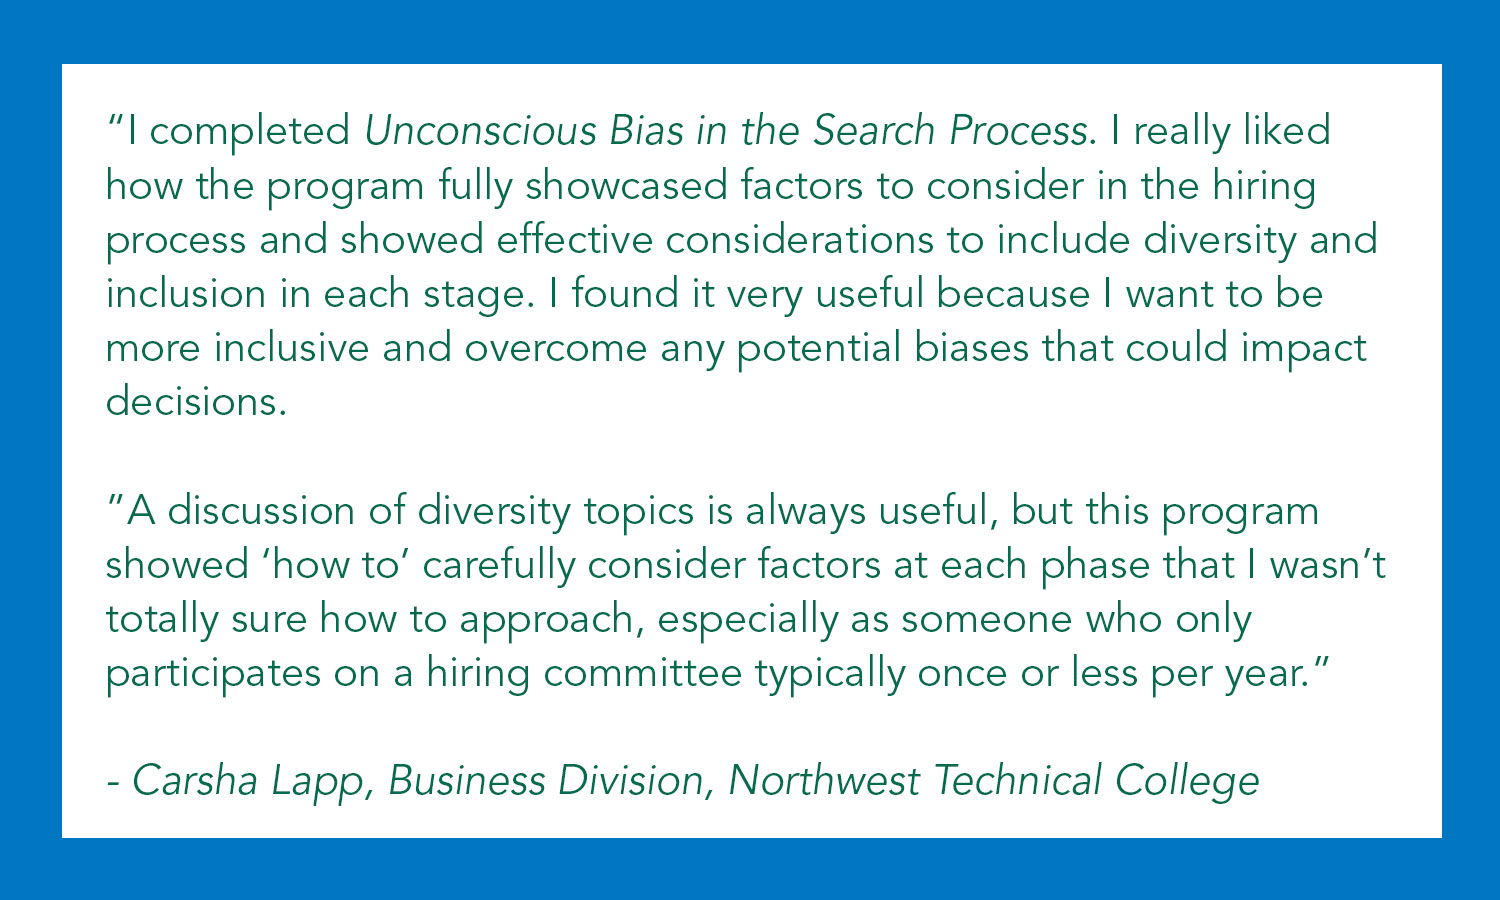 """""""I completed Unconscious Bias in the Search Process. I really liked how the program fully showcased factors to consider in the hiring process and showed effective considerations to include diversity and inclusion in each stage. I found it very useful because I want to be more inclusive and overcome any potential biases that could impact decisions.  """"A discussion of diversity topics is always useful, but this program showed 'how to' carefully consider factors at each phase that I wasn't totally sure how to approach, especially as someone who only participates on a hiring committee typically once or less per year.""""   - Carsha Lapp, Business Division, Northwest Technical College"""